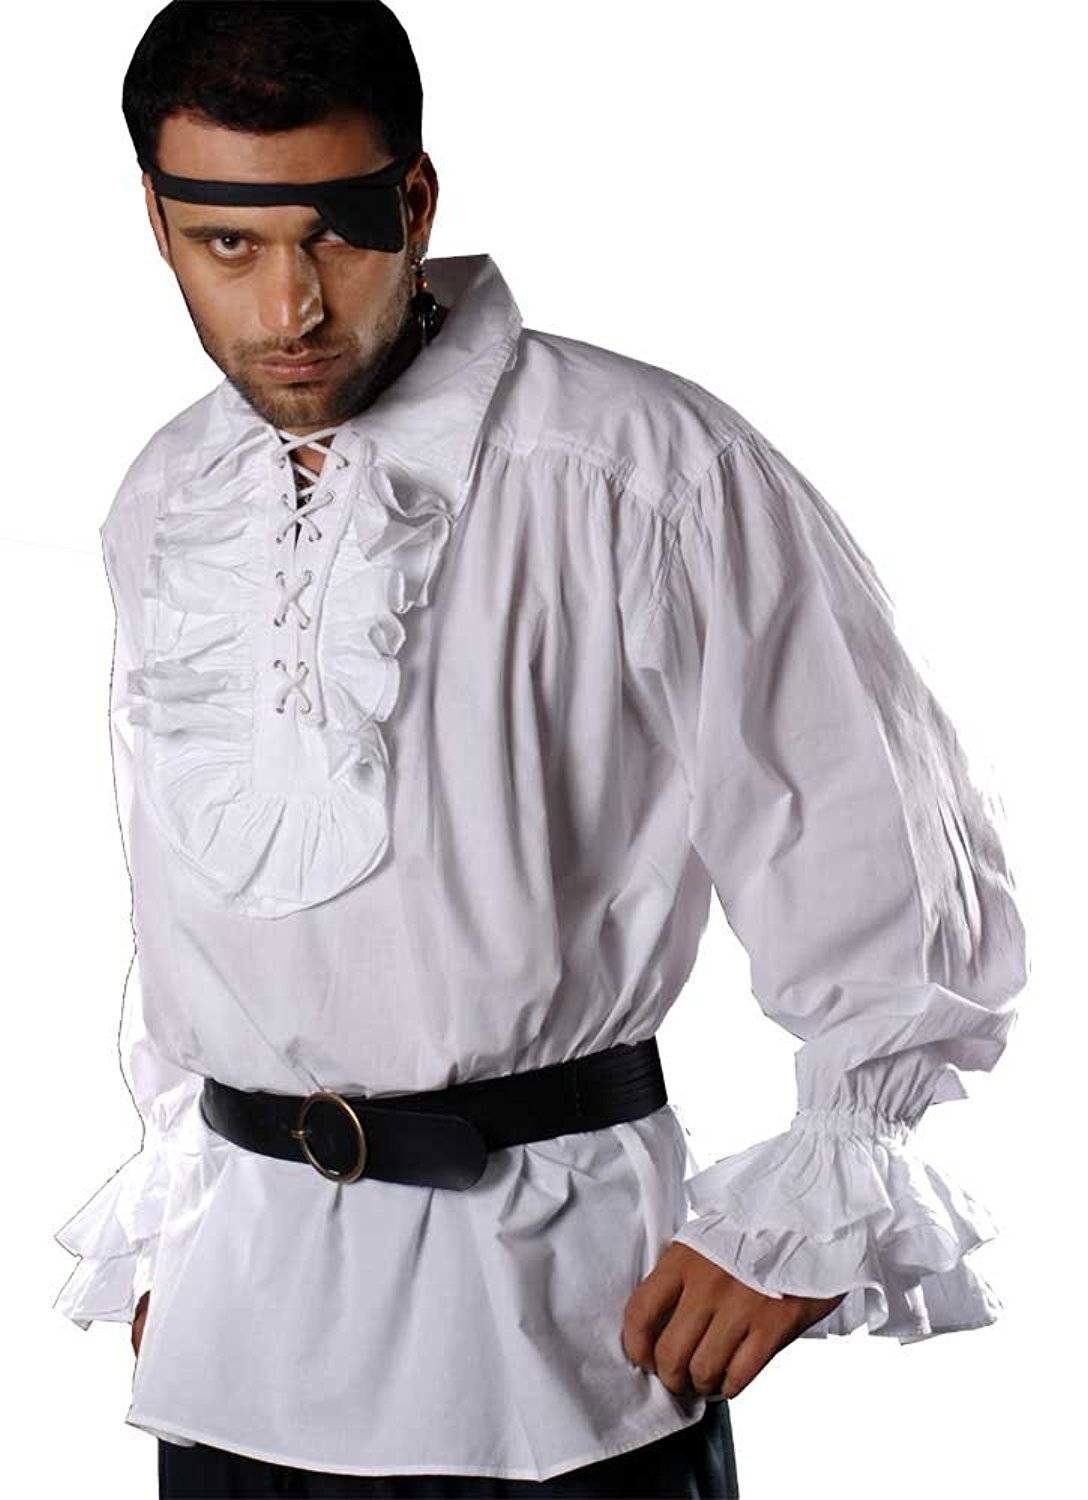 Medieval Poet's Pirate Shirt Costume [White] (Large) by ThePirateDressing (Image #1)